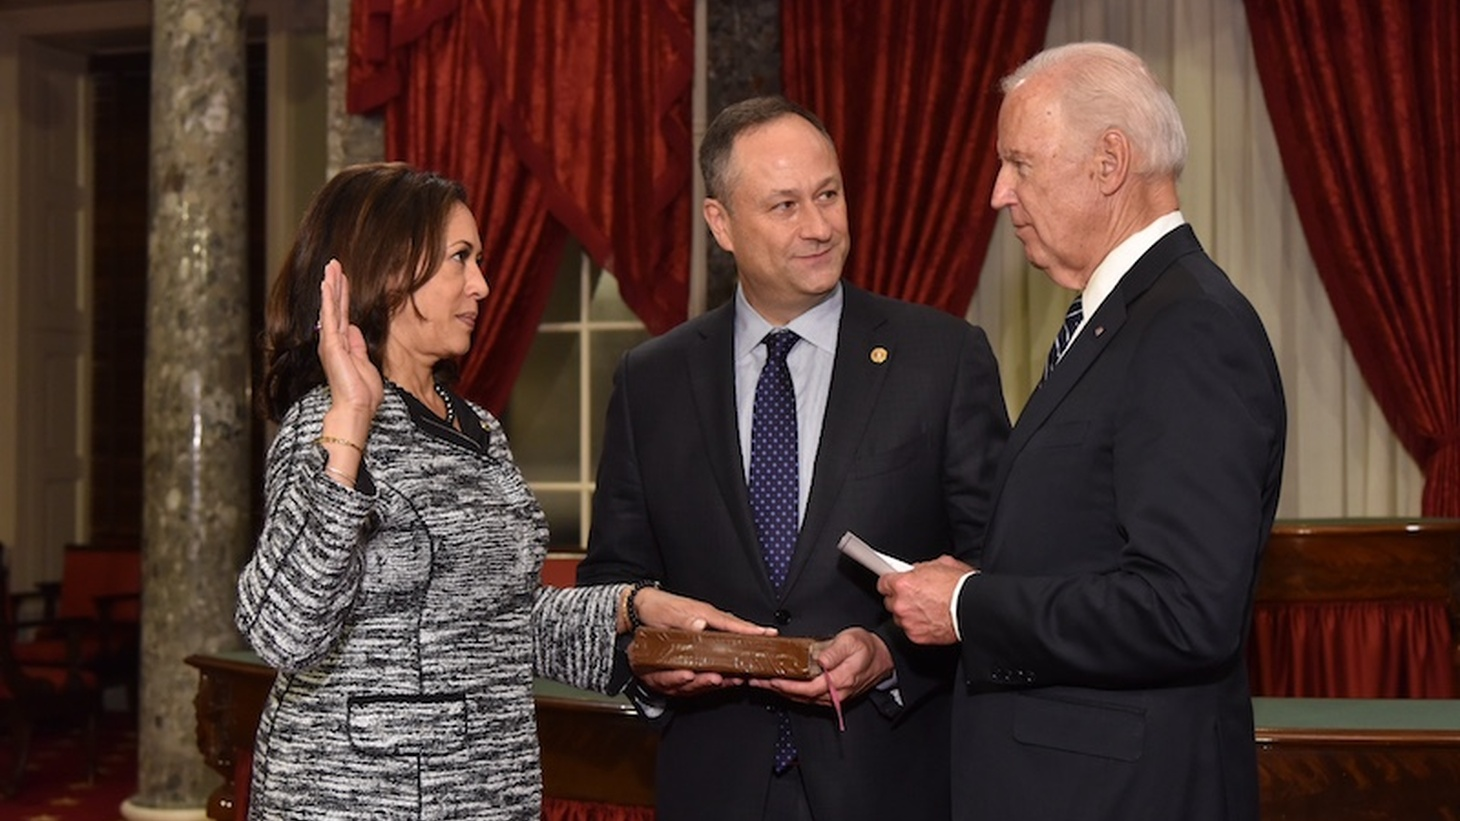 January 3, 2017: Kamala Harris takes the oath of office as United States Senator with Vice President Joe Biden (right) and Douglas Emhoff (center).